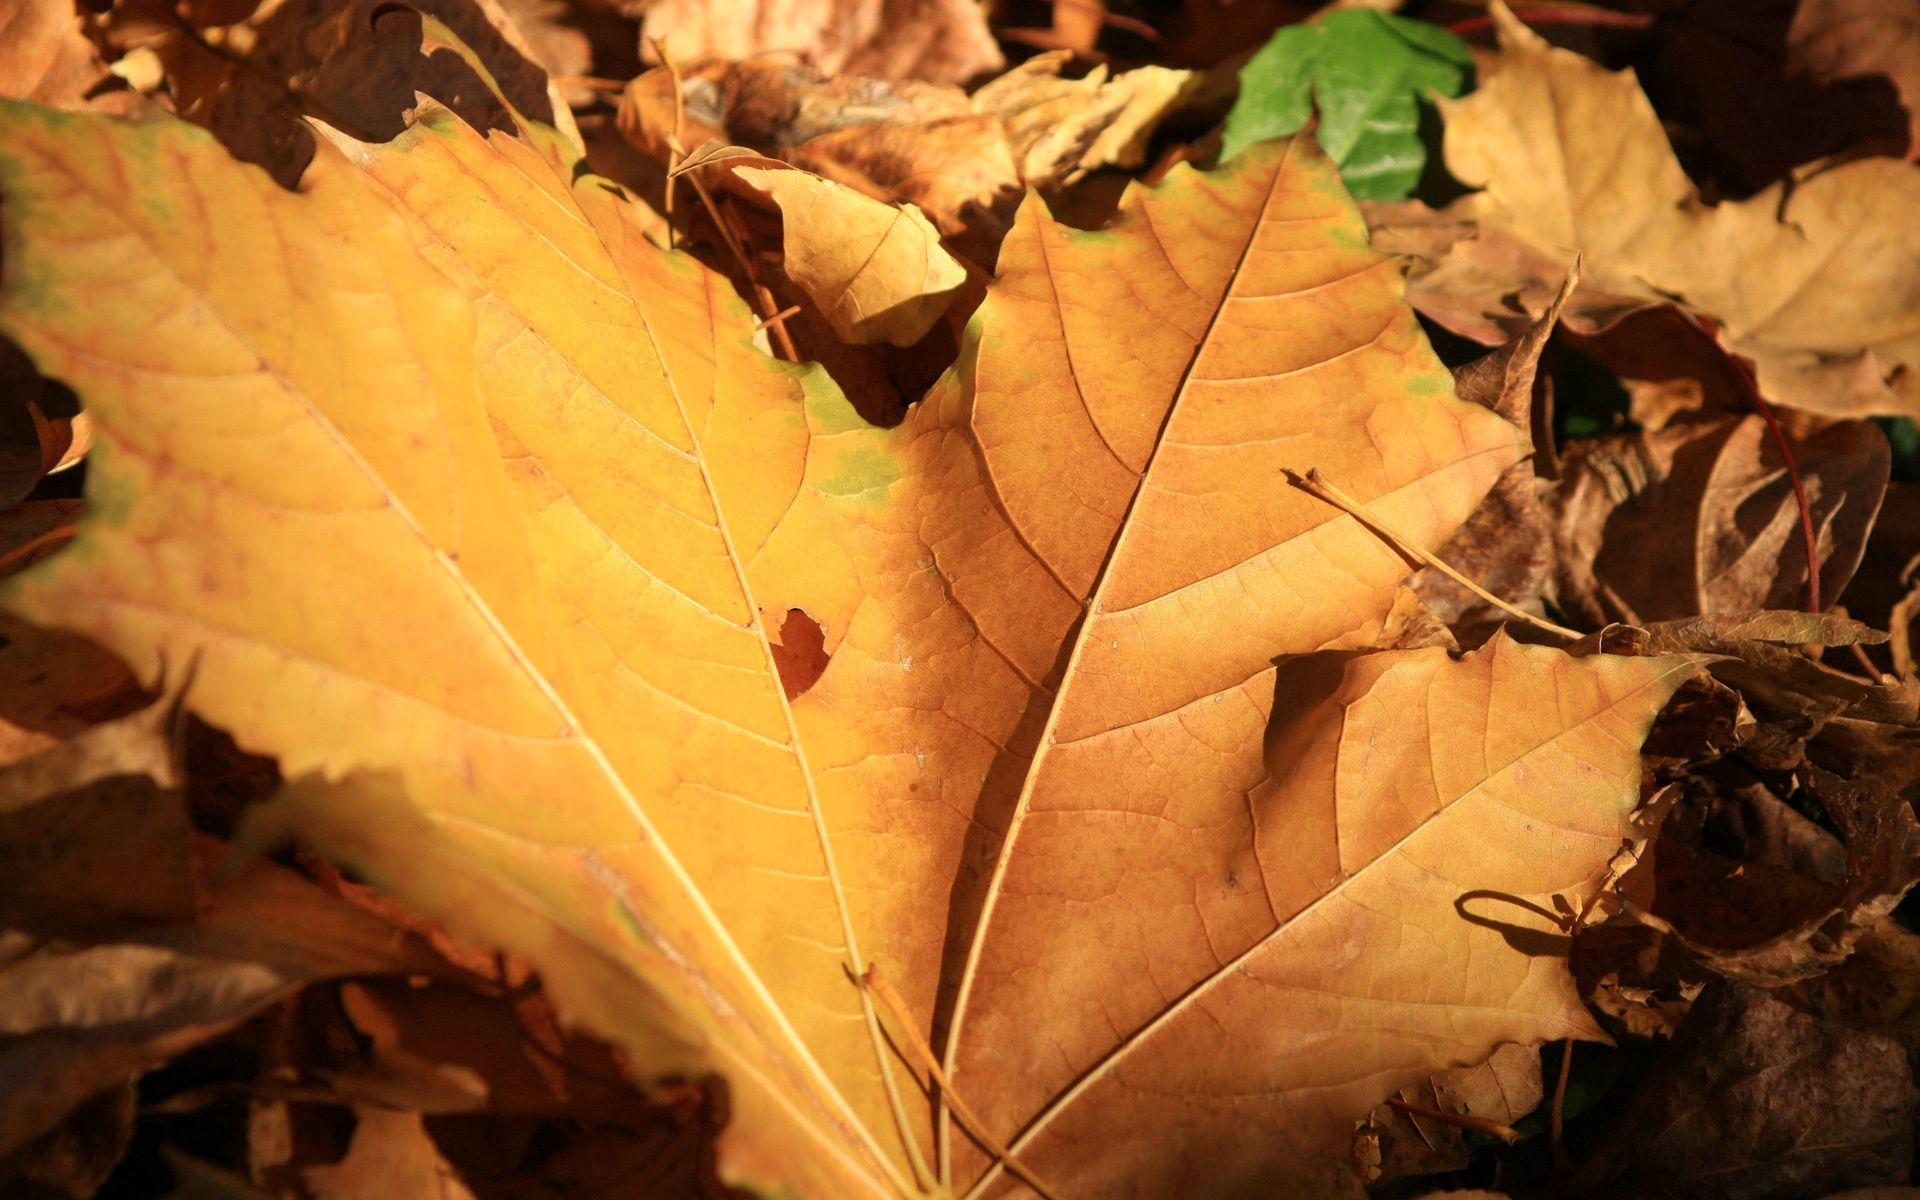 90823 download wallpaper Nature, Sheet, Leaf, Maple, Autumn screensavers and pictures for free